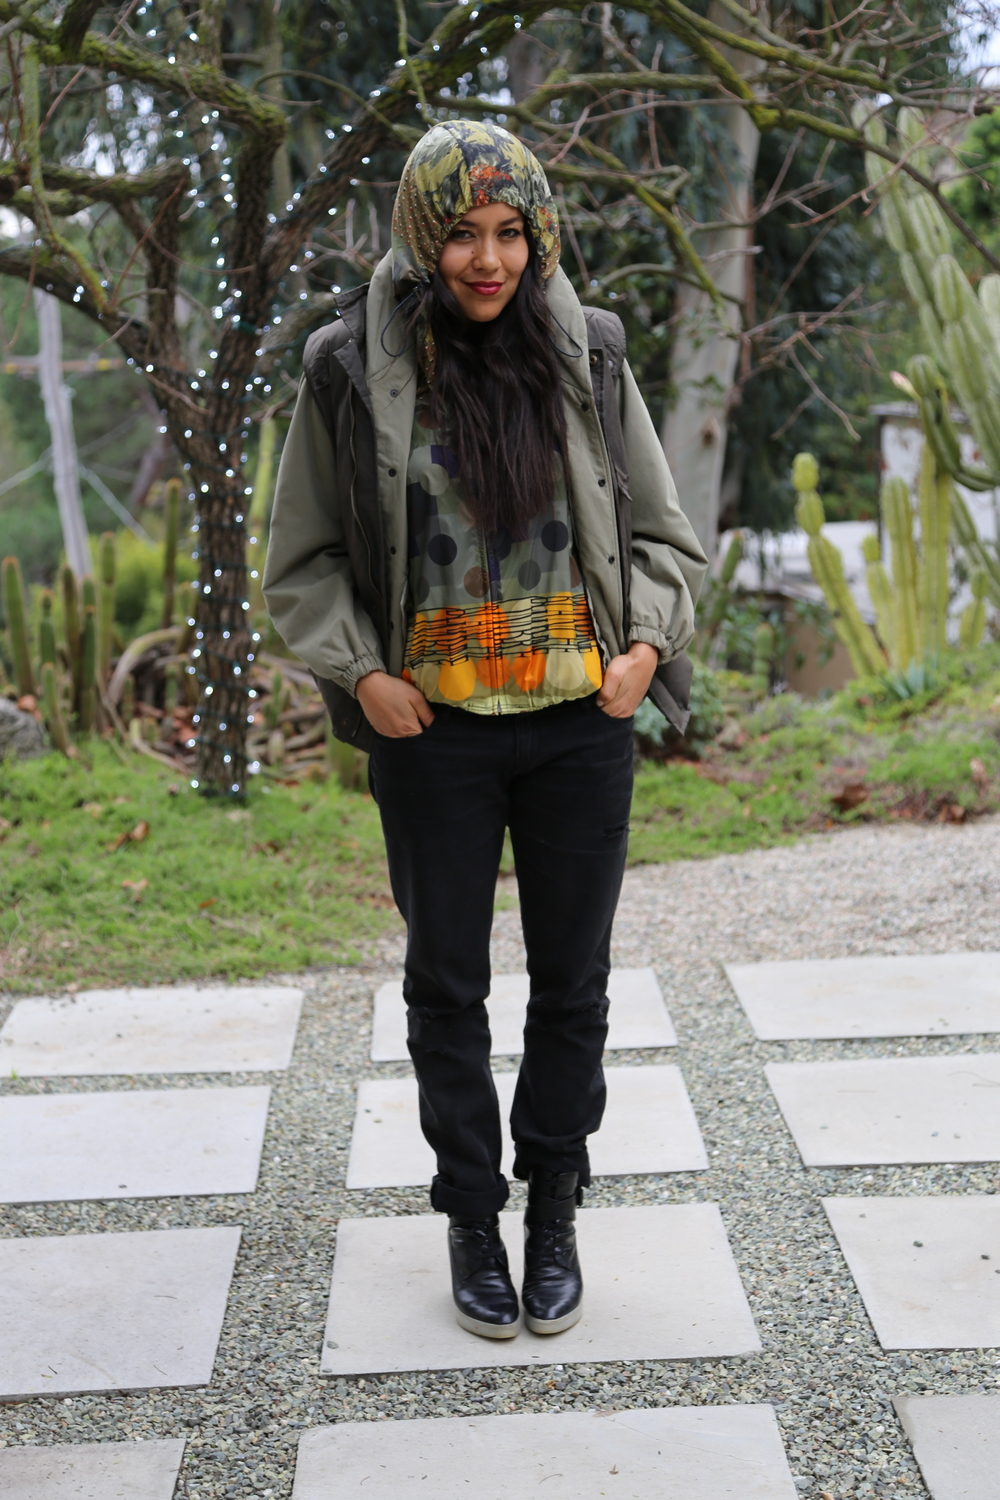 RTA-DENIM-BOYFRIEND-ALEXANDER-WANG-BOOTS-MASCIA-RAINCOAT-NOM-DE-GUERRE-VEST-HOOLLYWOOD-AVIATOR-JACKET-LOS-ANGELES.JPG